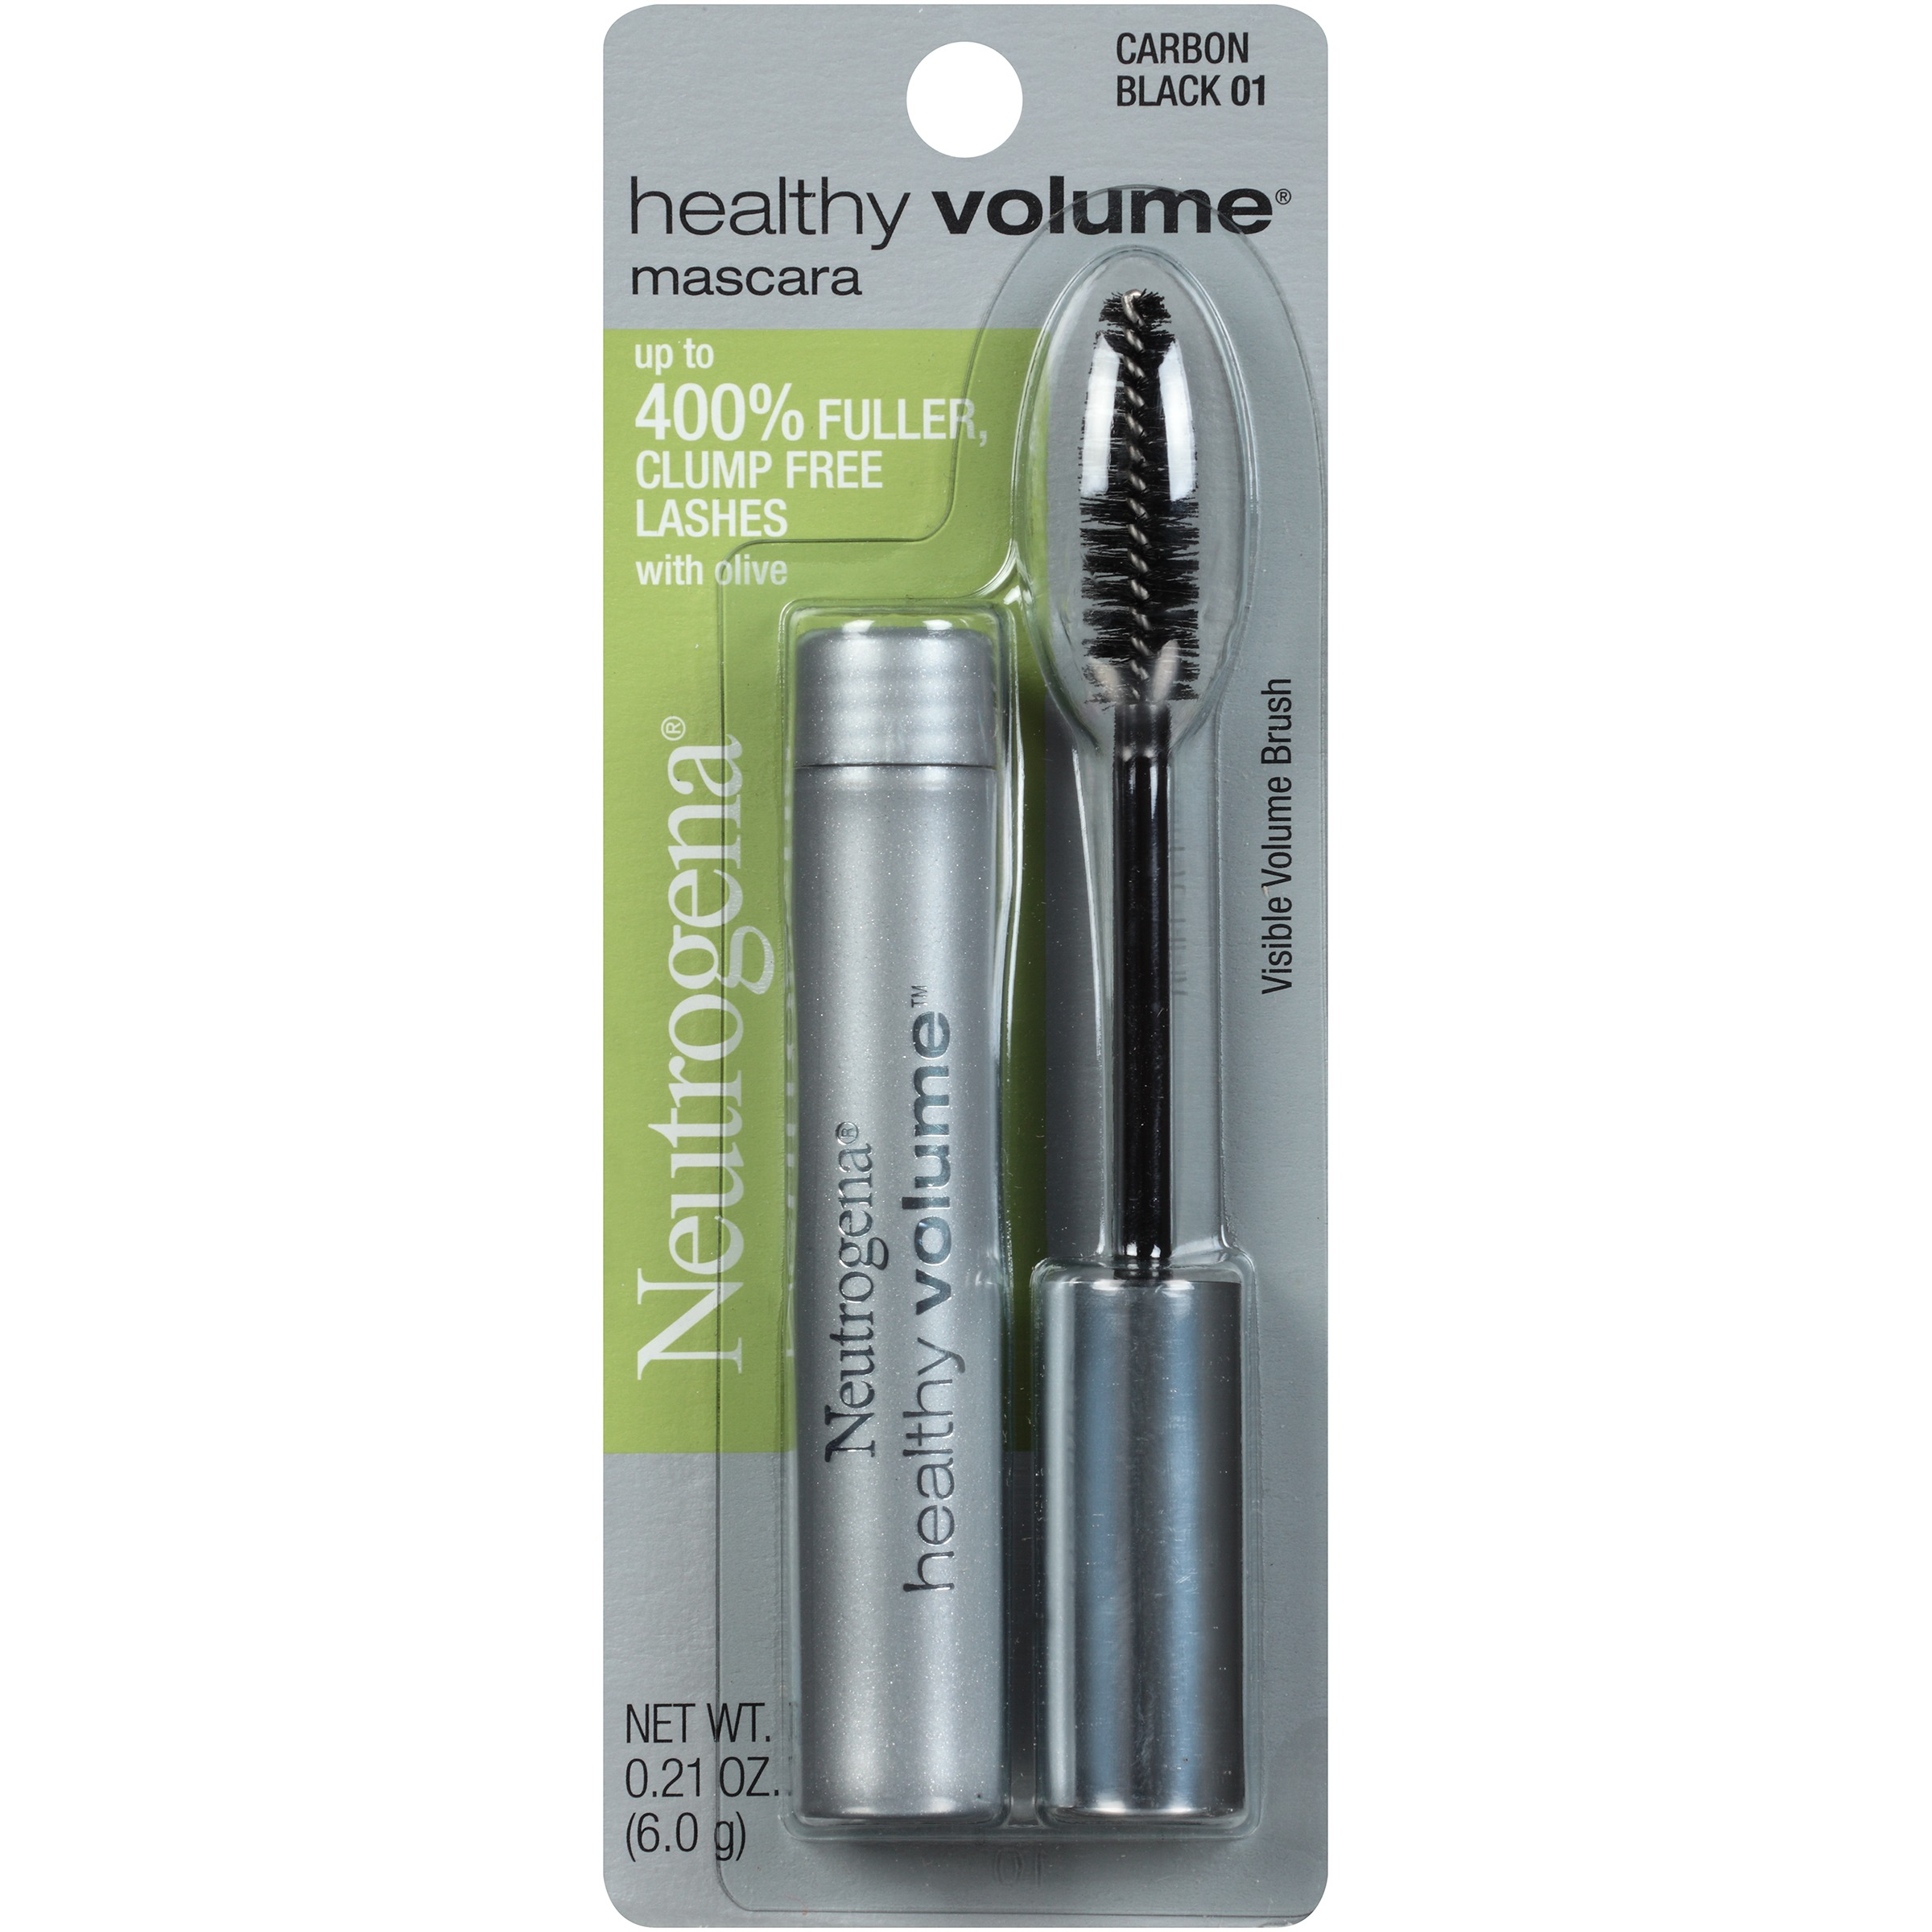 Neutrogena Healthy Volume Mascara, Carbon Black 01, .21 Oz